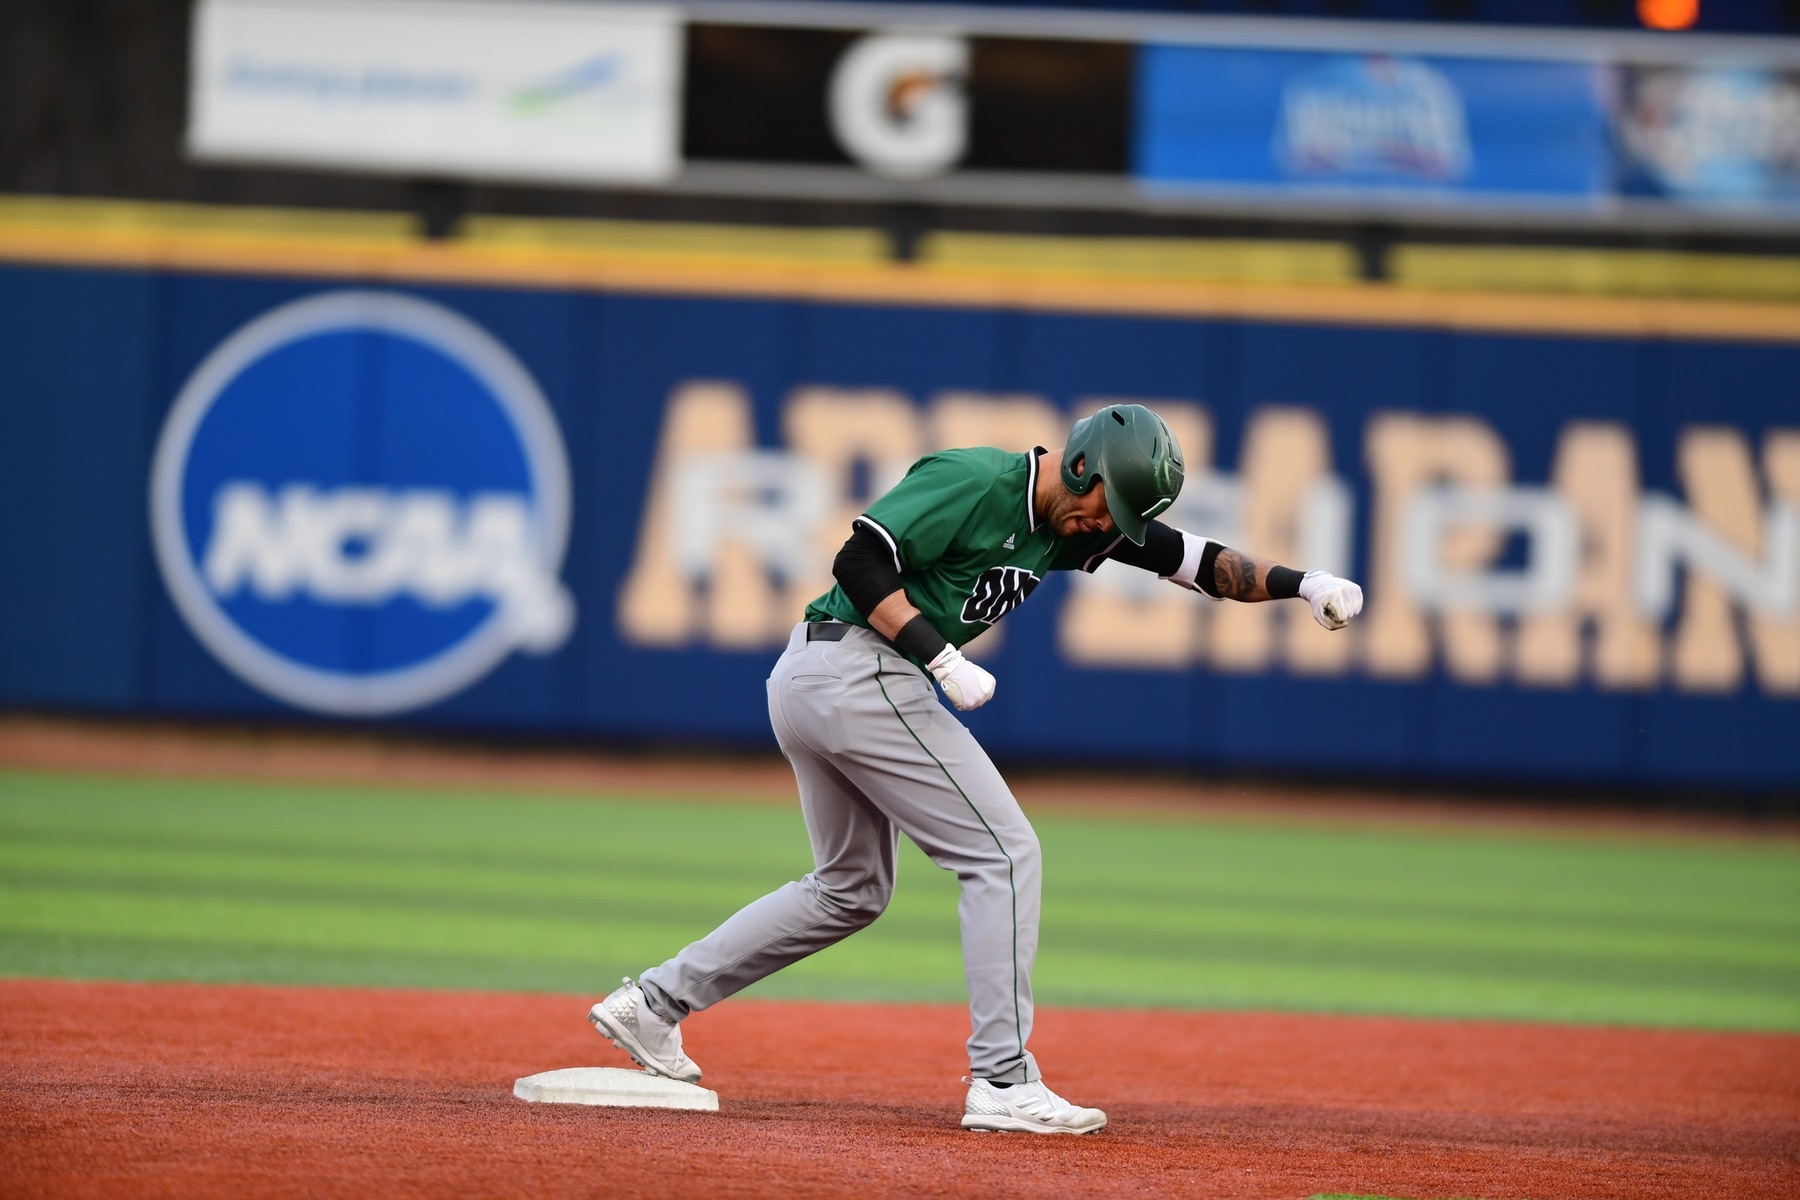 Klein's Go-Ahead Double Pushes Ohio Baseball To Comeback Victory At Kent State In Extras